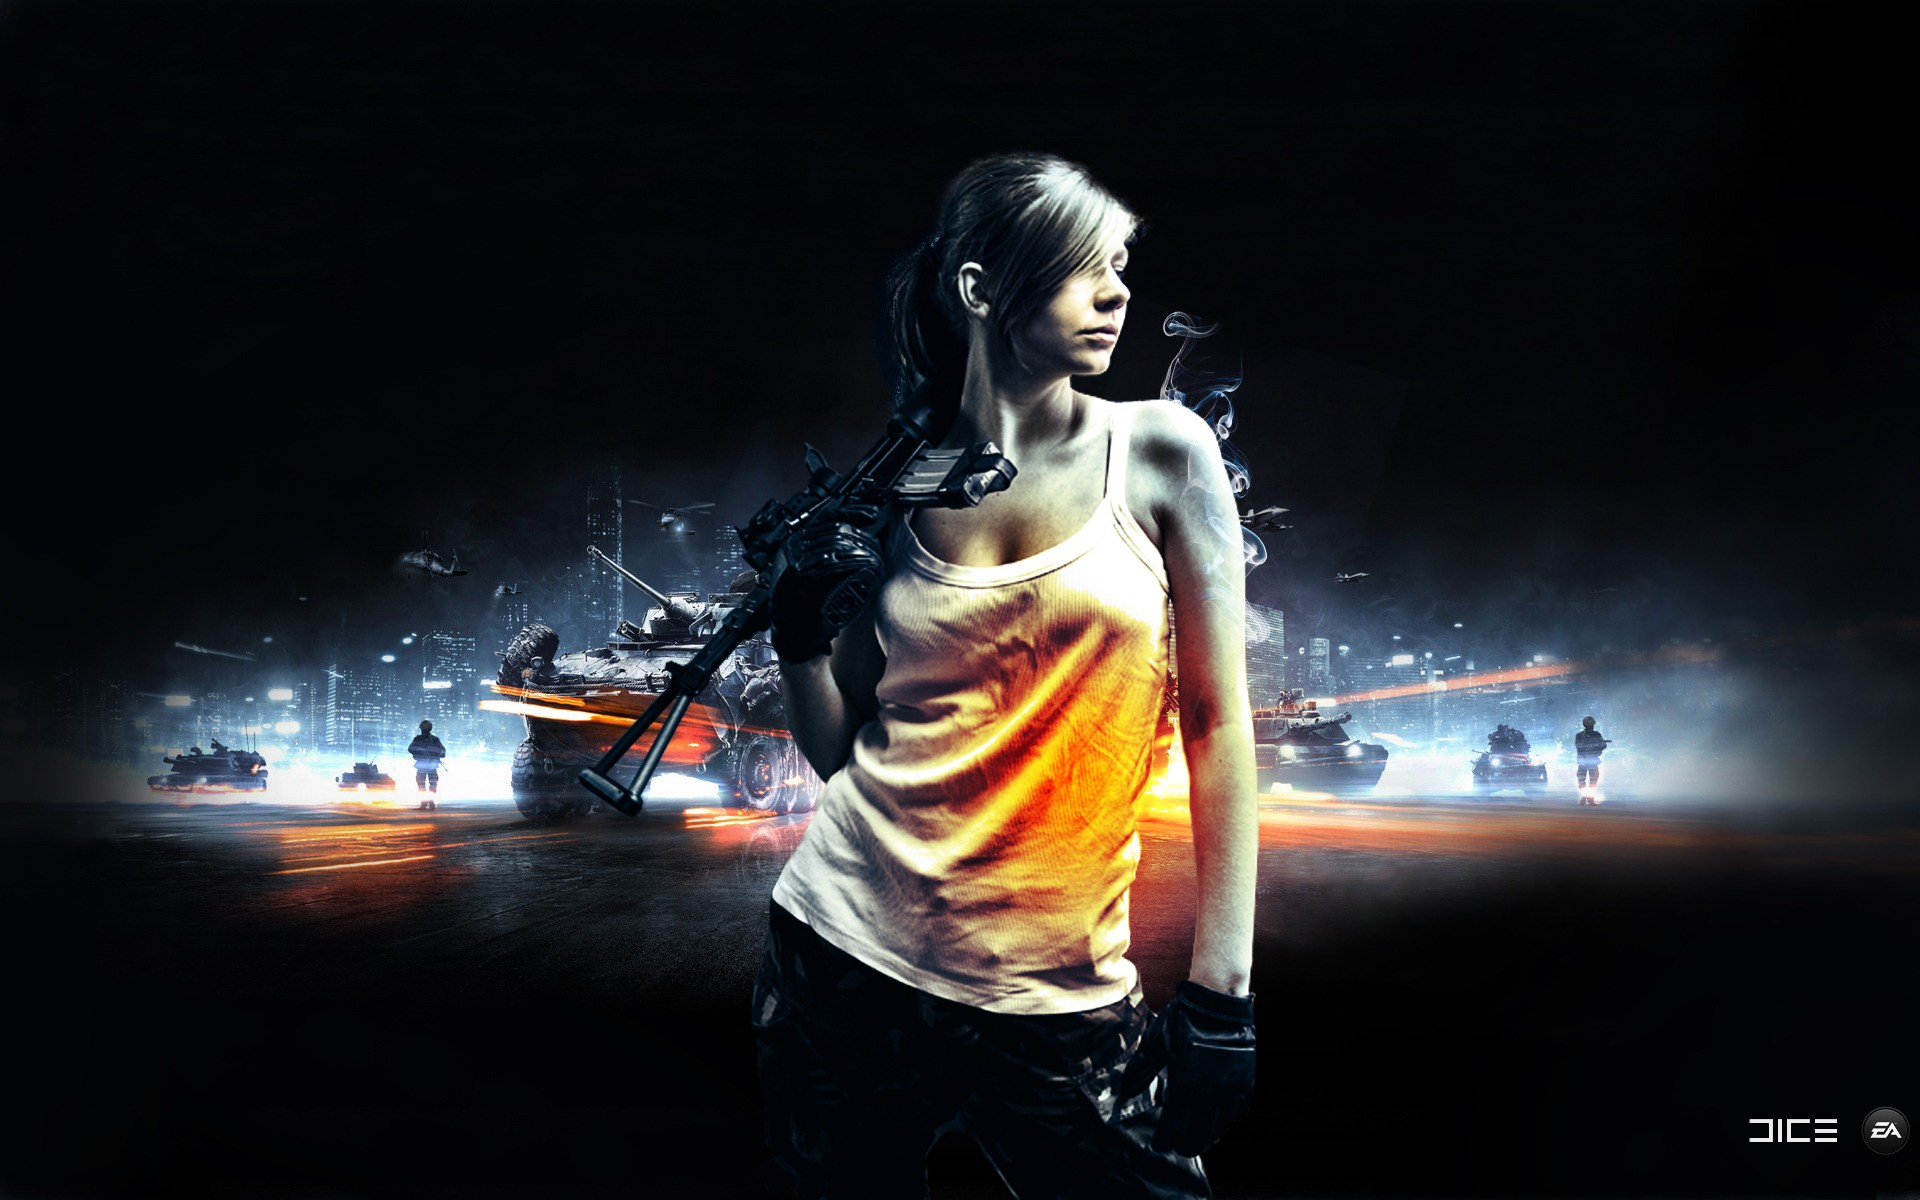 191 battlefield 3 hd wallpapers backgrounds wallpaper for Wallpaper three